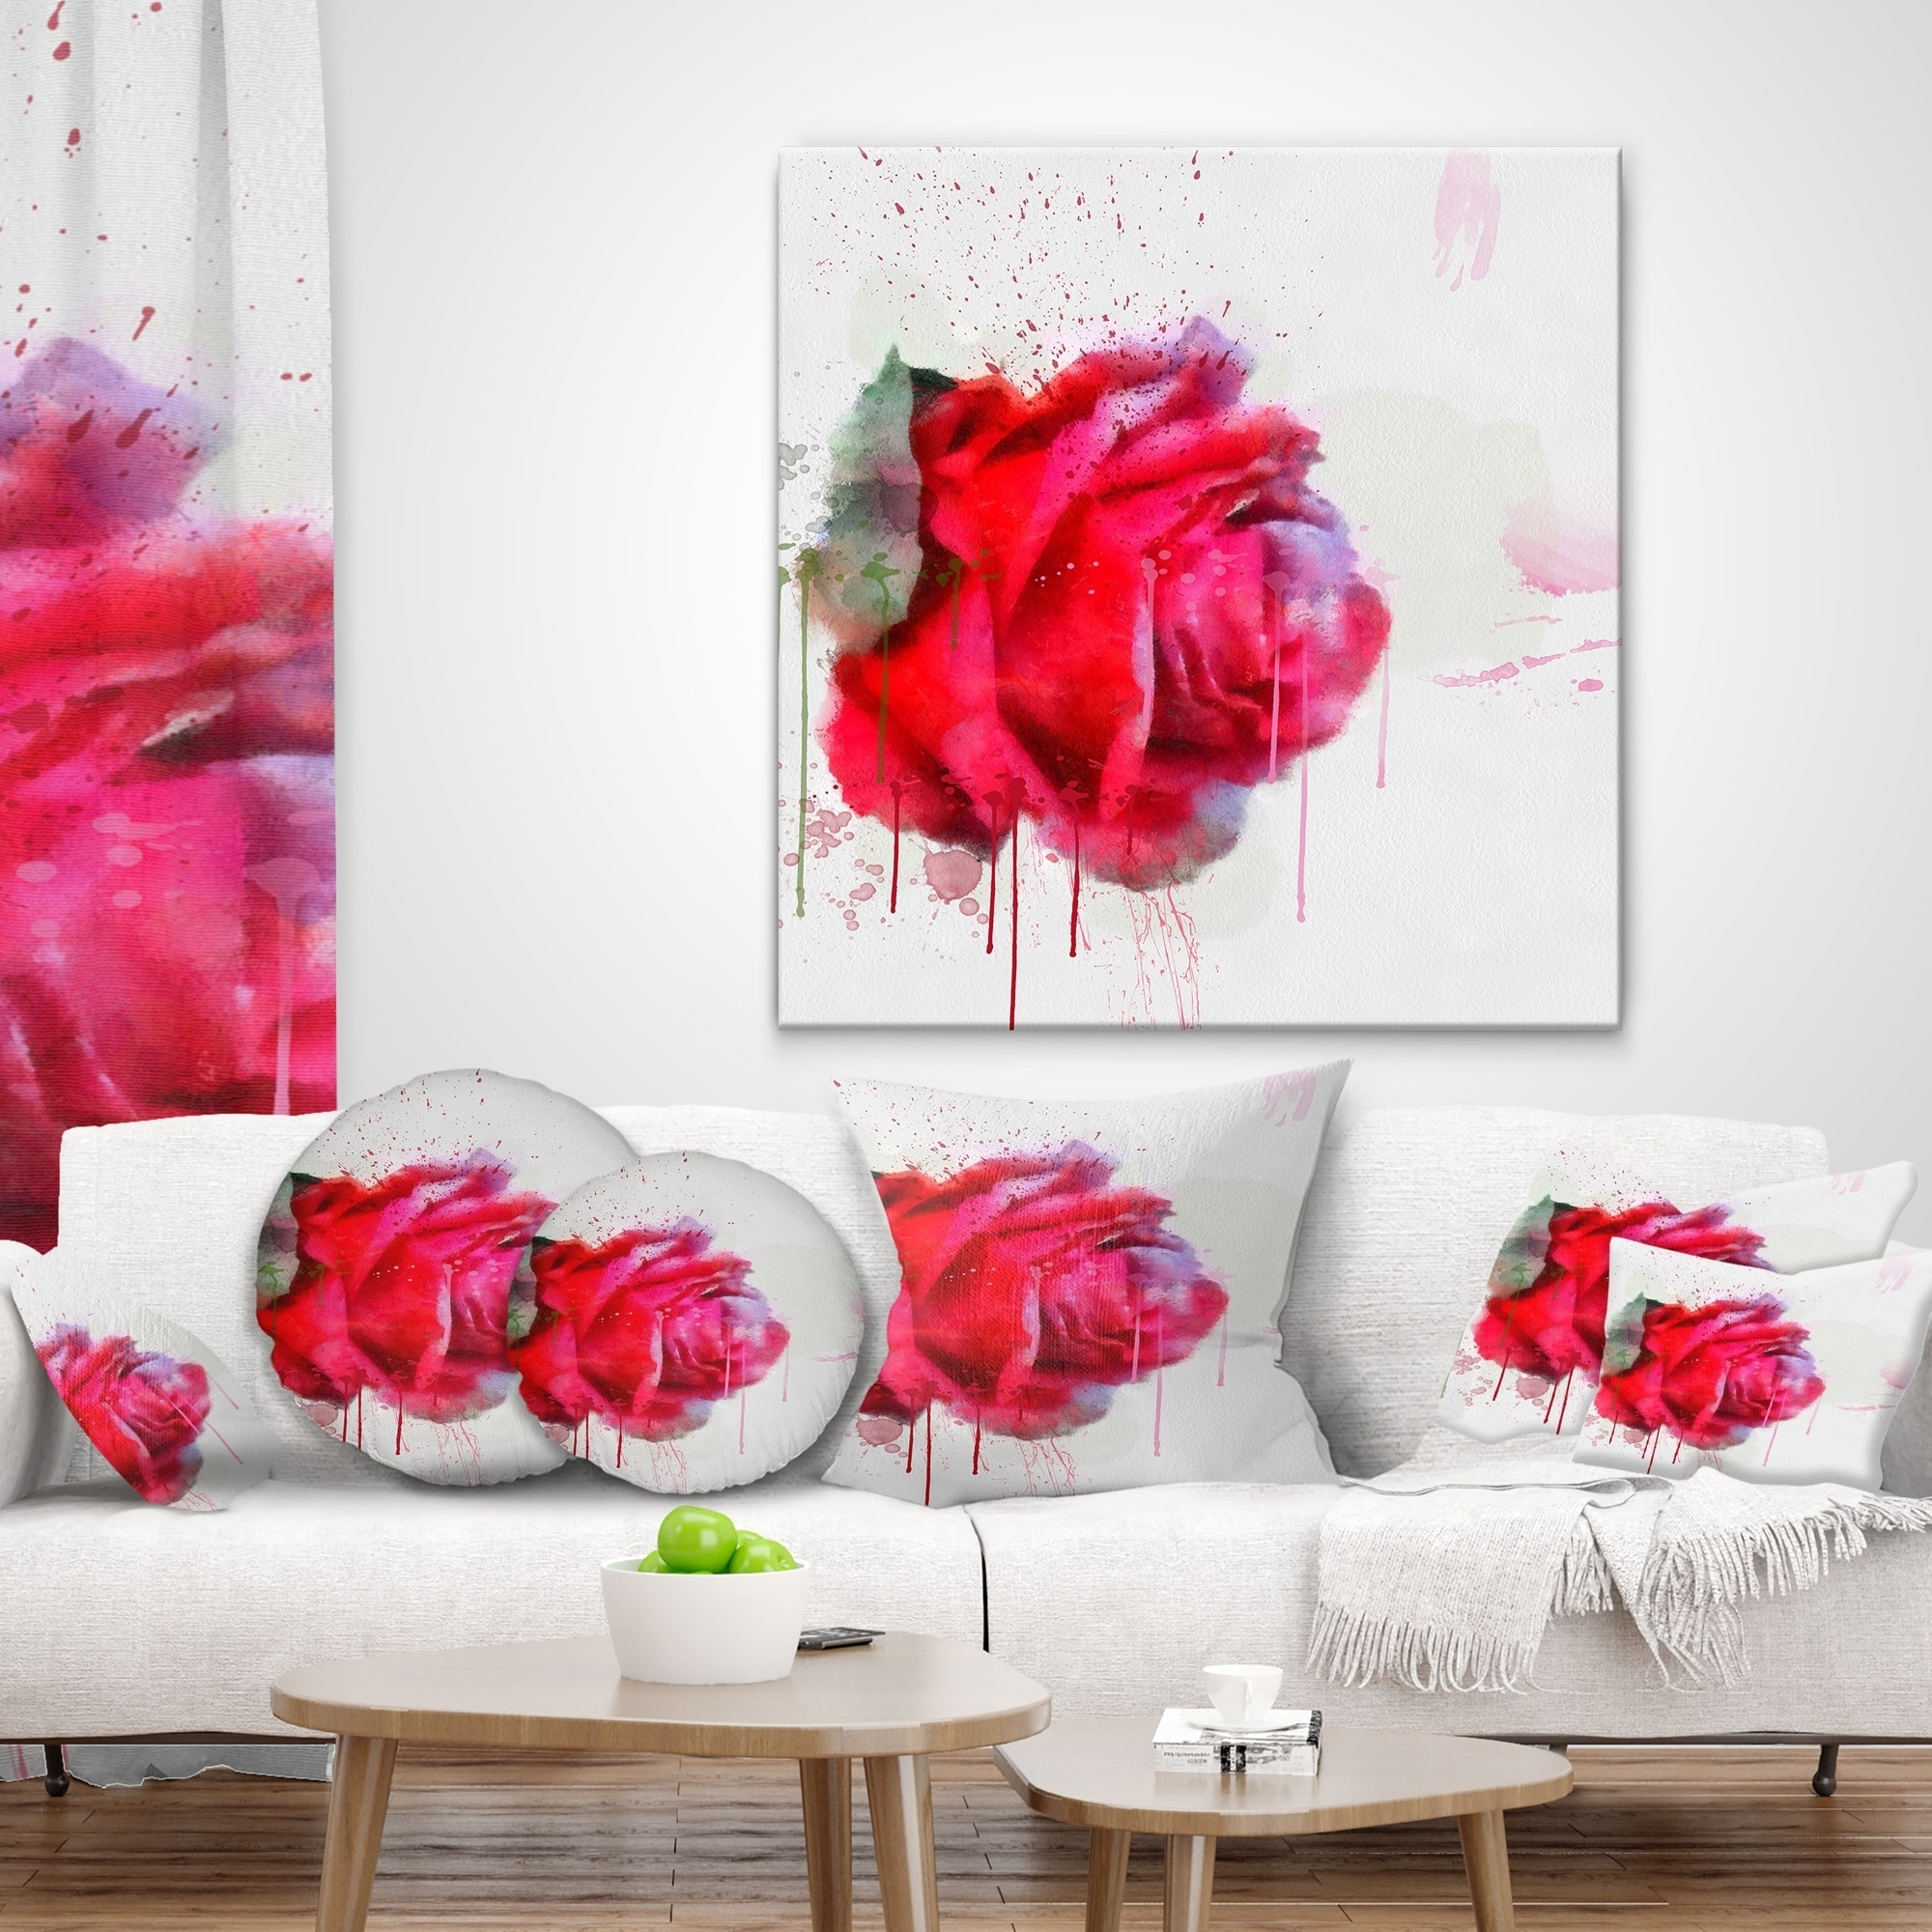 Designart CU13721-18-18 Watercolor Red Rose Illustration Floral Cushion Cover for Living Room Sofa Throw Pillow 18 x 18